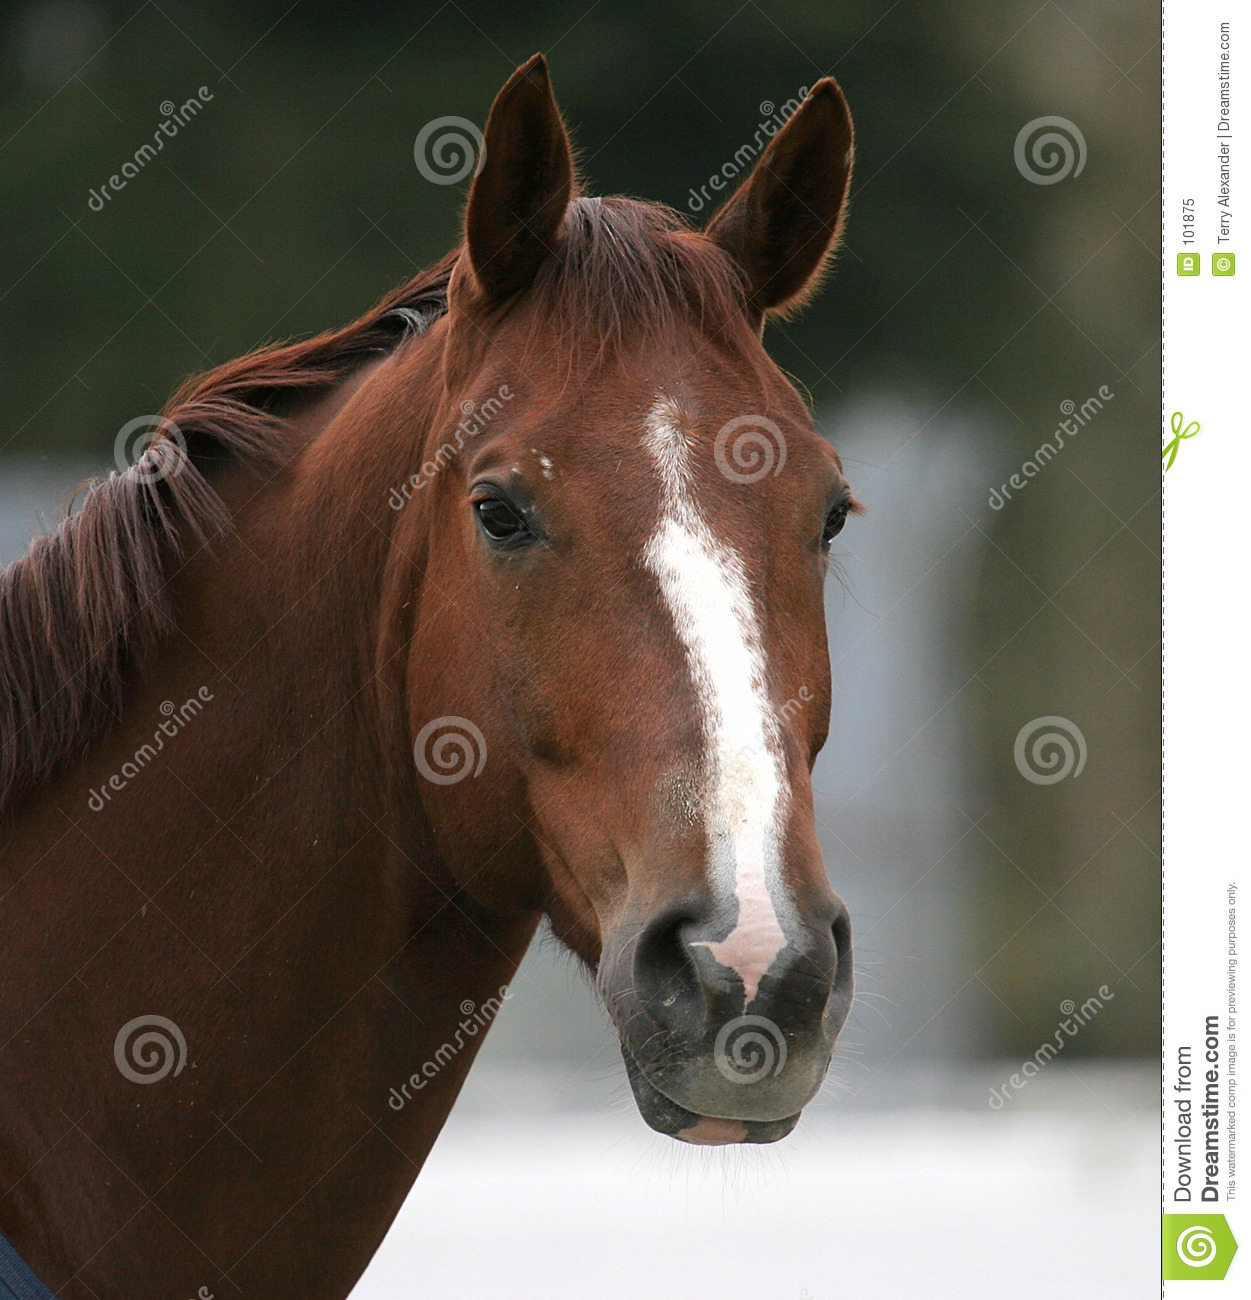 portrait of brown horse royalty free stock photo - image: 101875